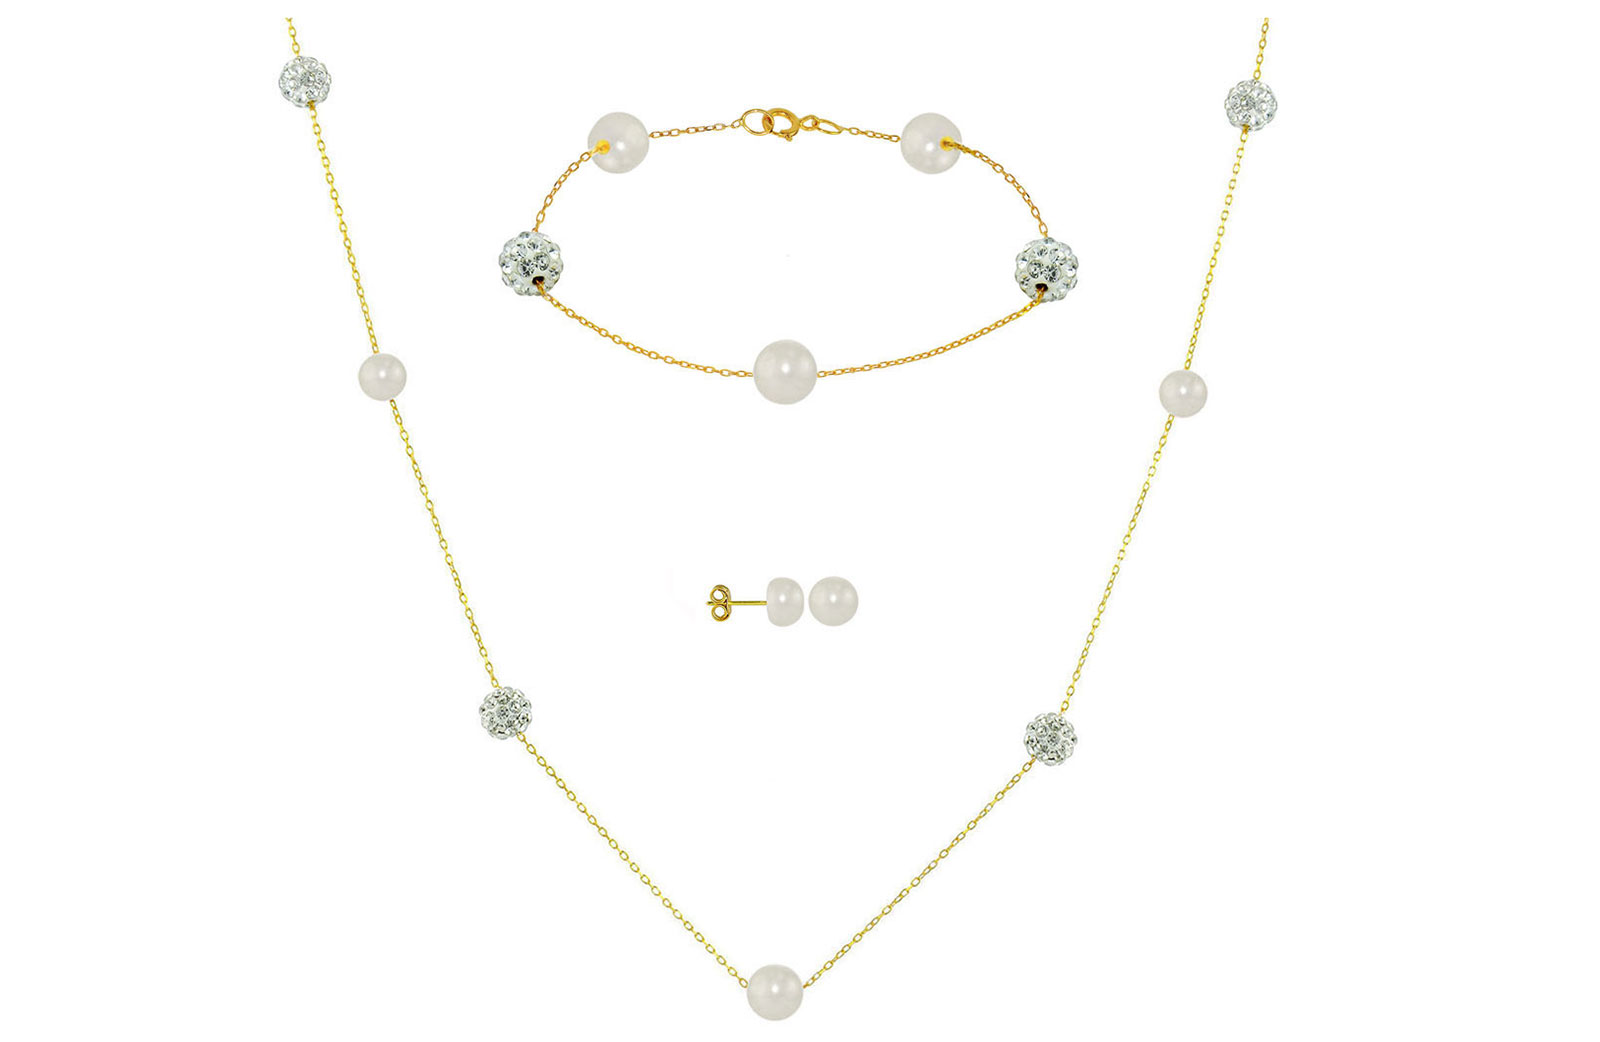 Vera Perla 18K Solid Gold Gradual Built-in 5-6mm White Pearls and Crystal Ball Jewelry Set - 3 pcs.